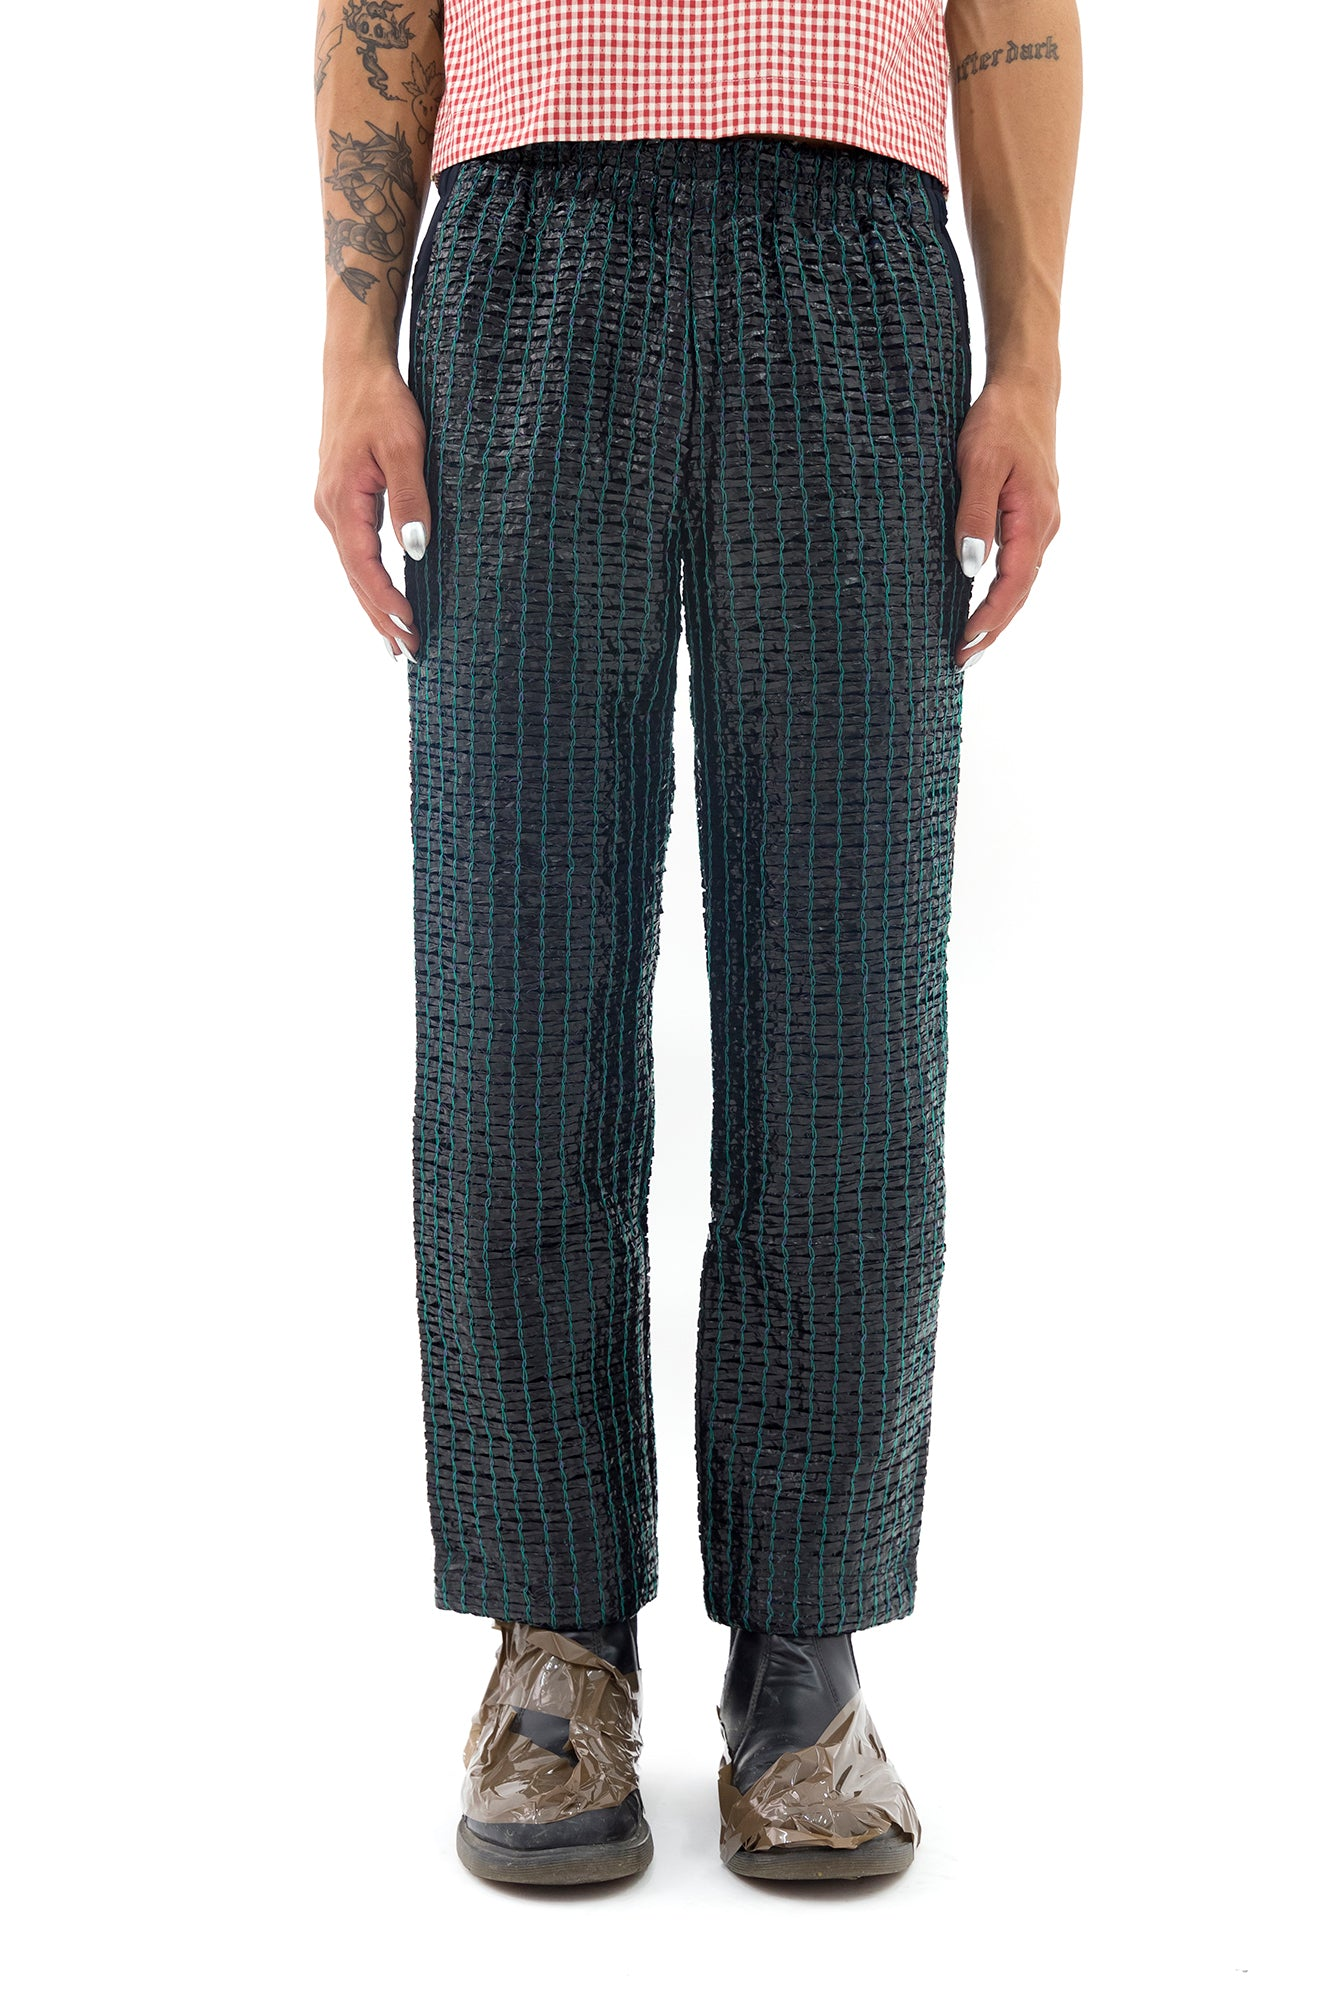 Sweatpants with Lining in Teal and Black